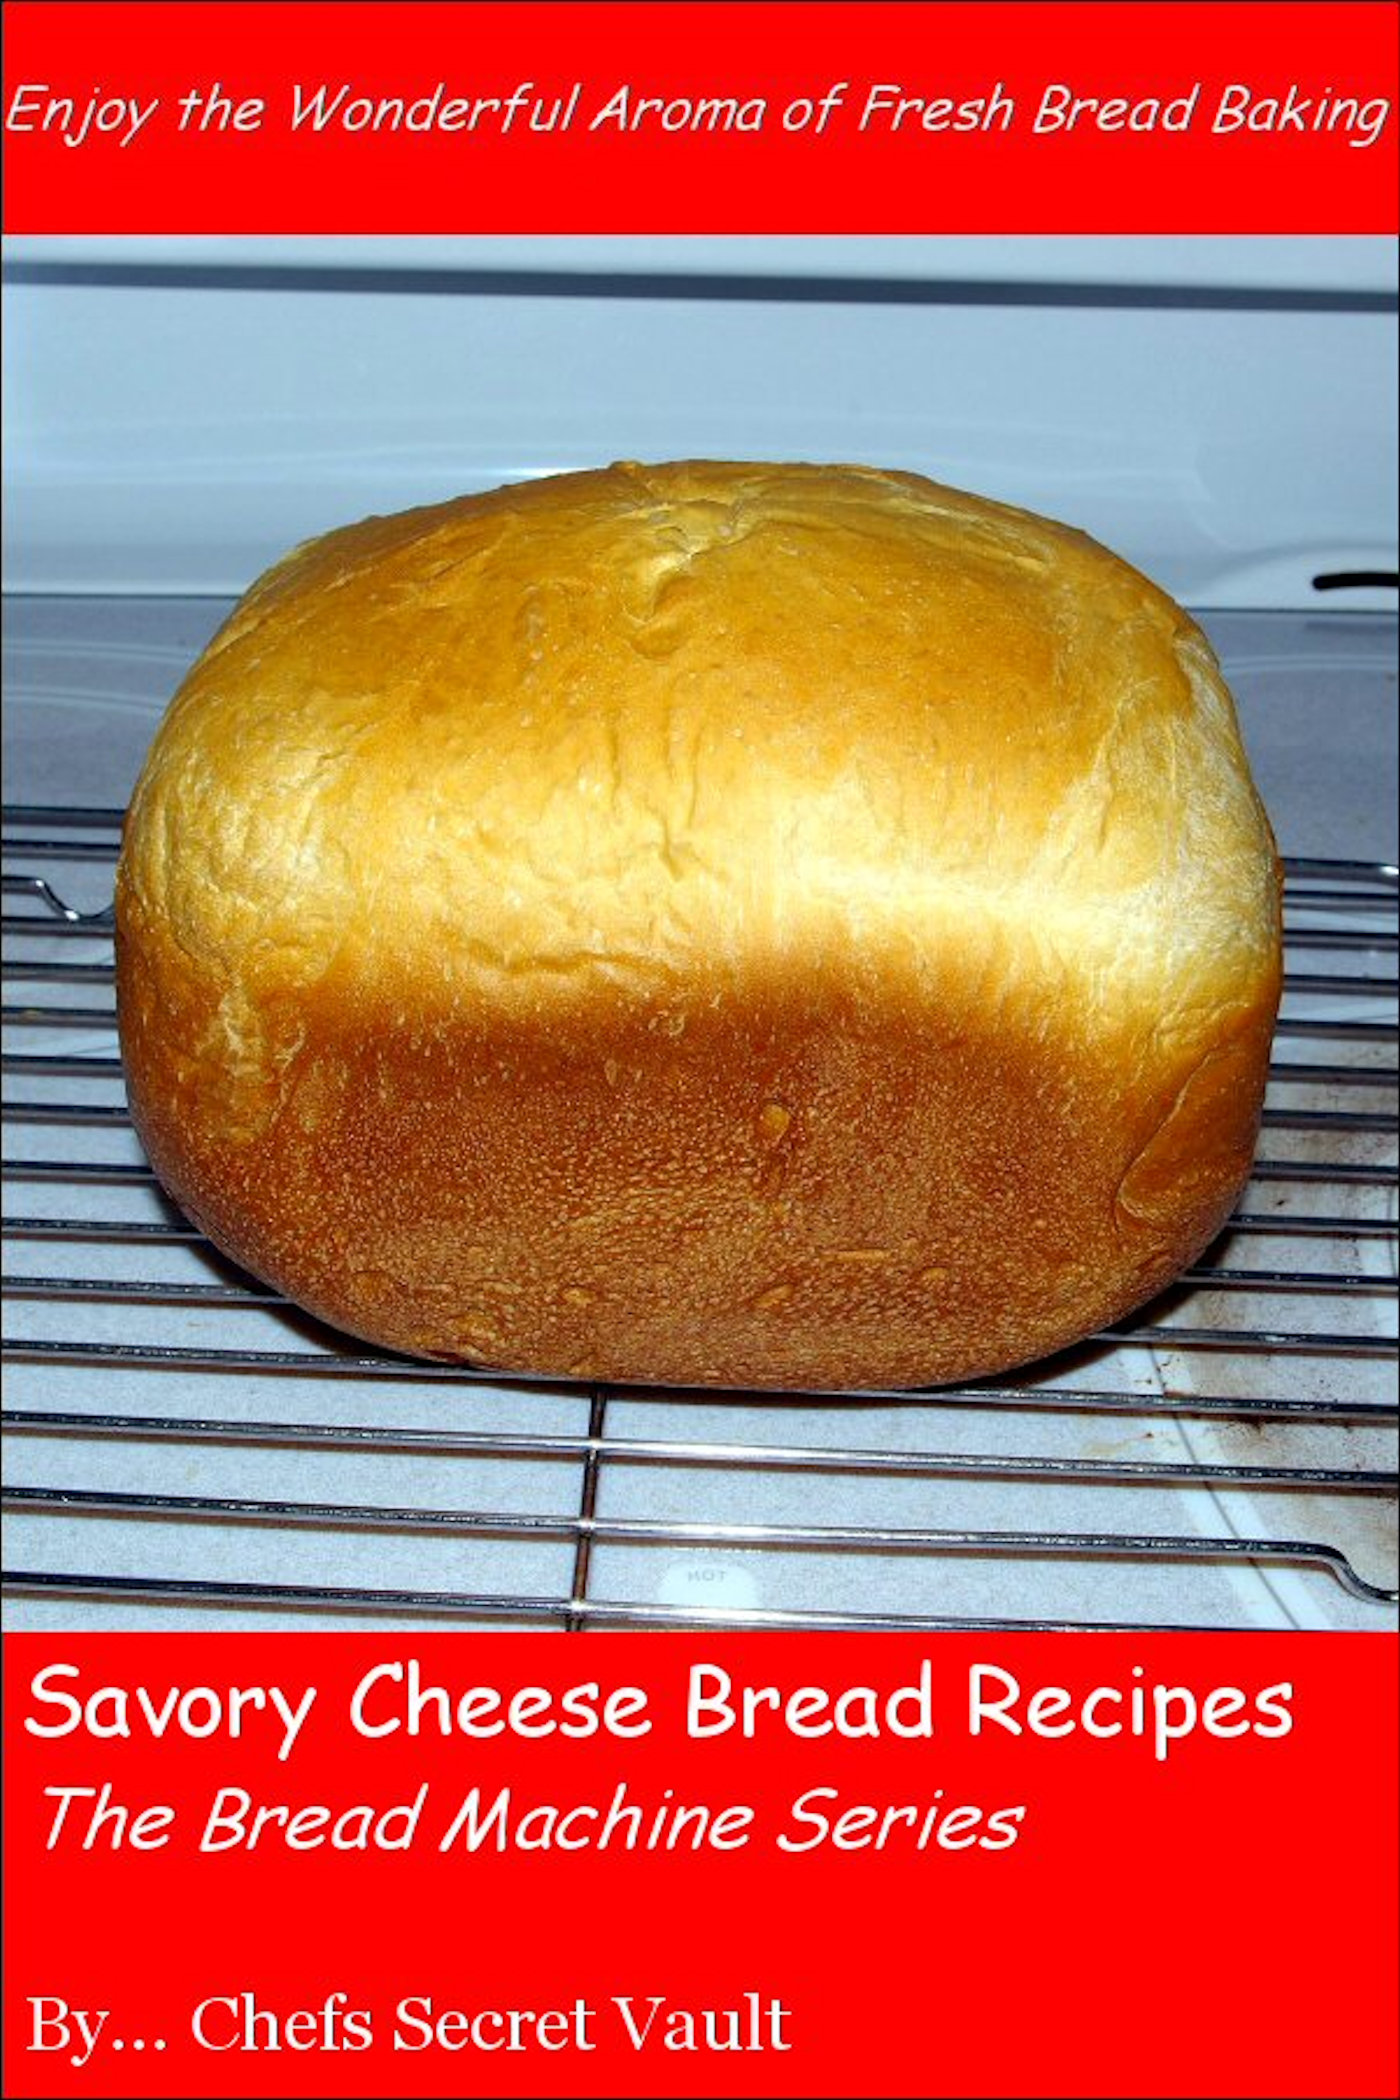 Savory Cheese Bread Recipes The Bread Machine Series An Ebook By Chefs Secret Vault